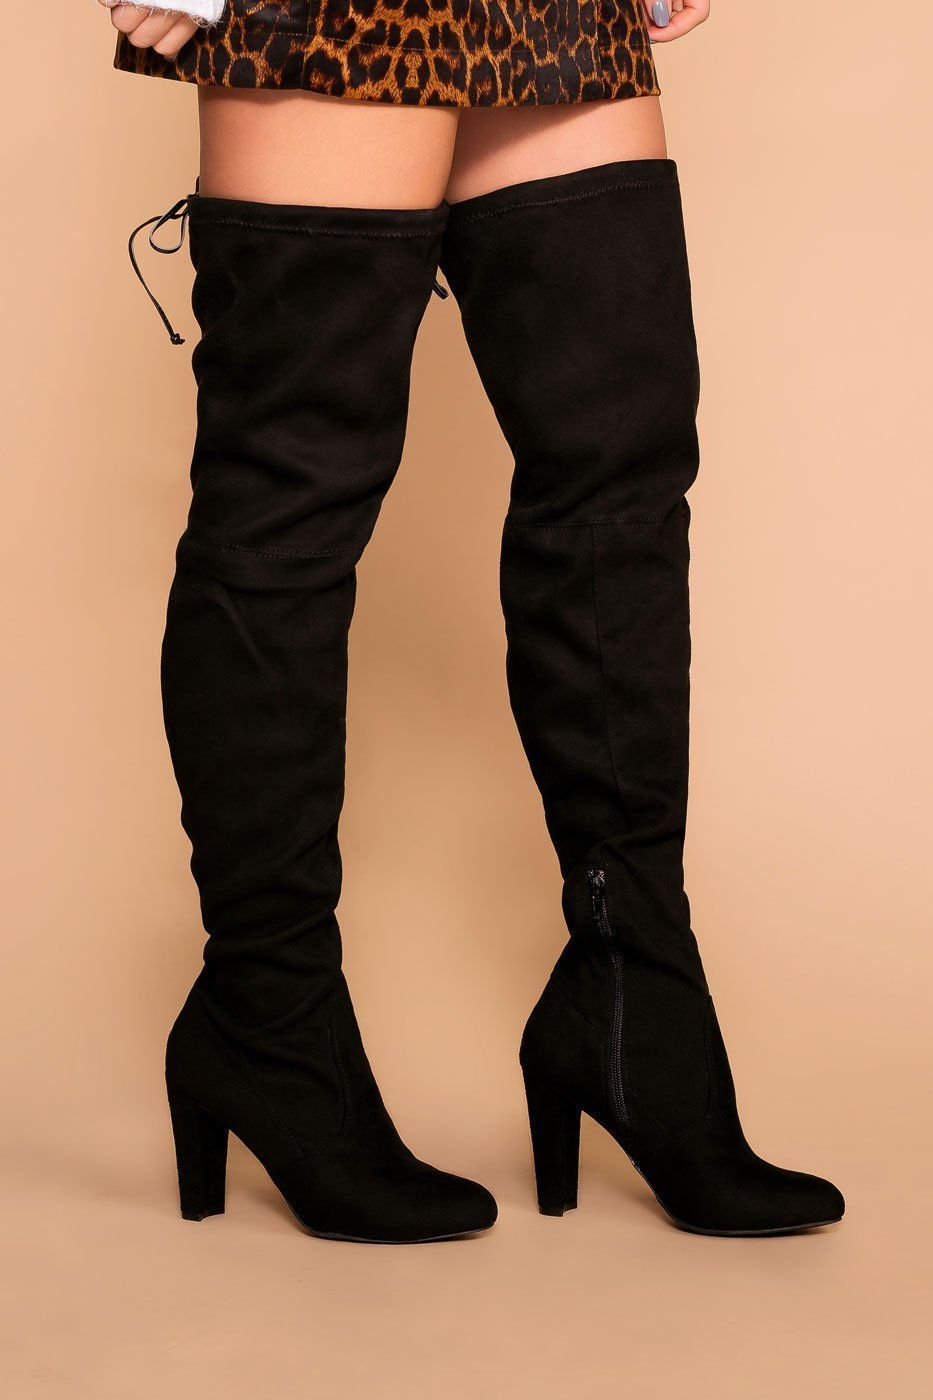 5af558917b6 Stand Tall Black Over The Knee Suede Boots